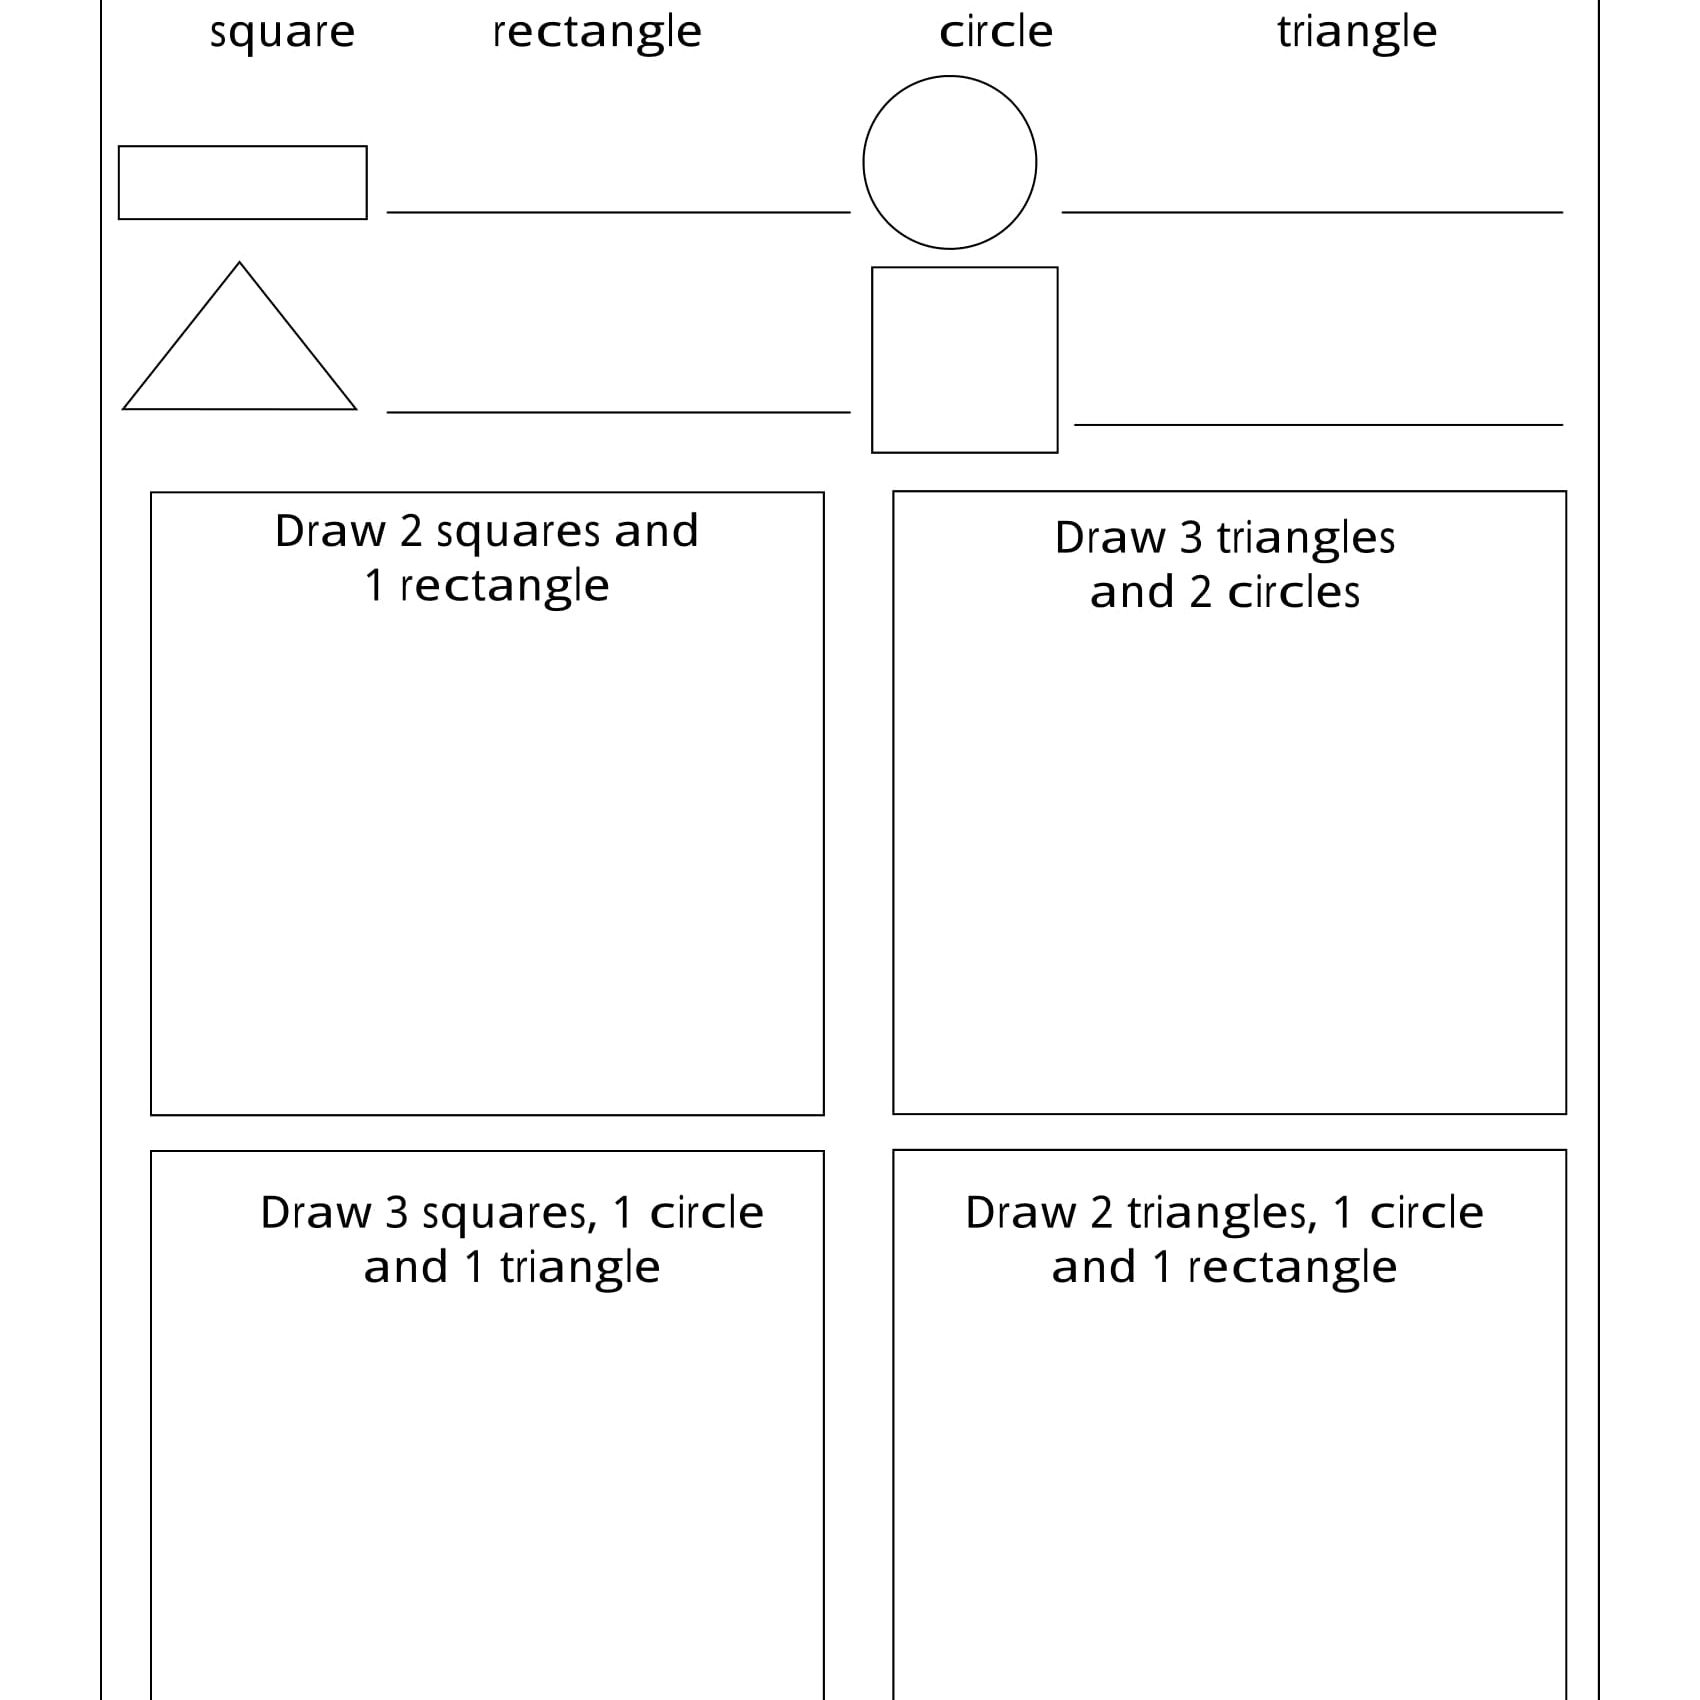 Geometry Worksheets For Students In 1St Grade | Free Printable Social Studies Worksheets For 1St Grade